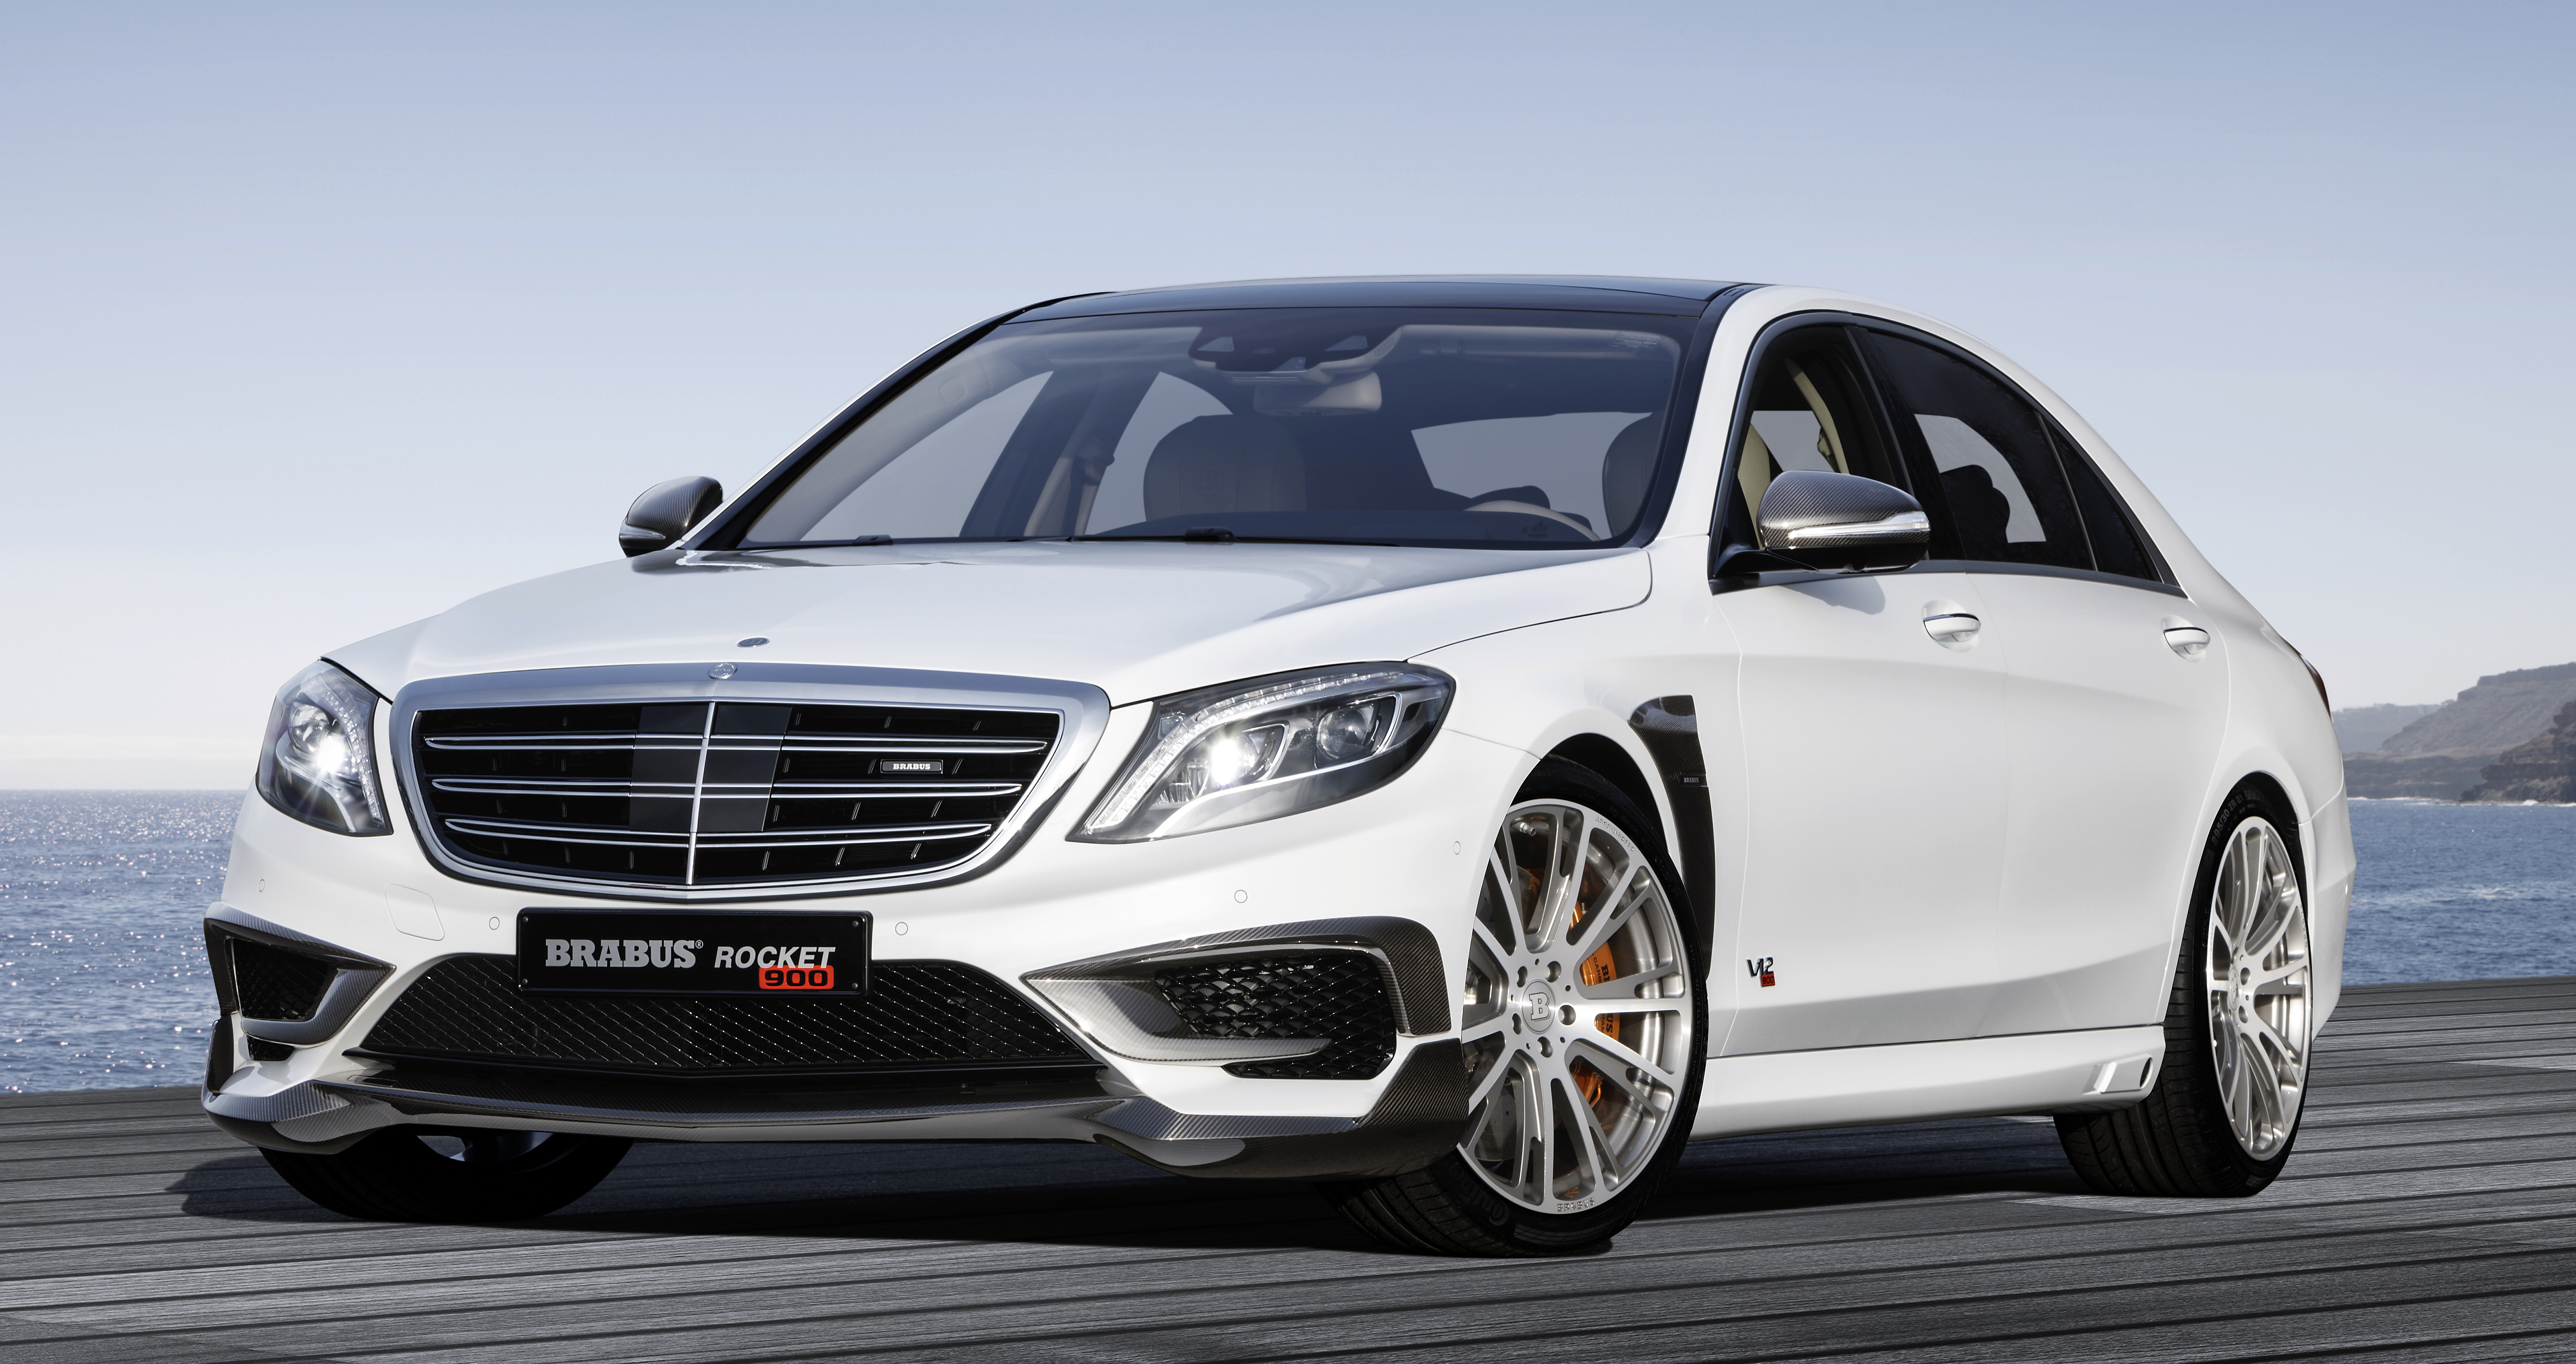 Brabus Rocket 900 - W222 S-Class with a 900 hp V12!